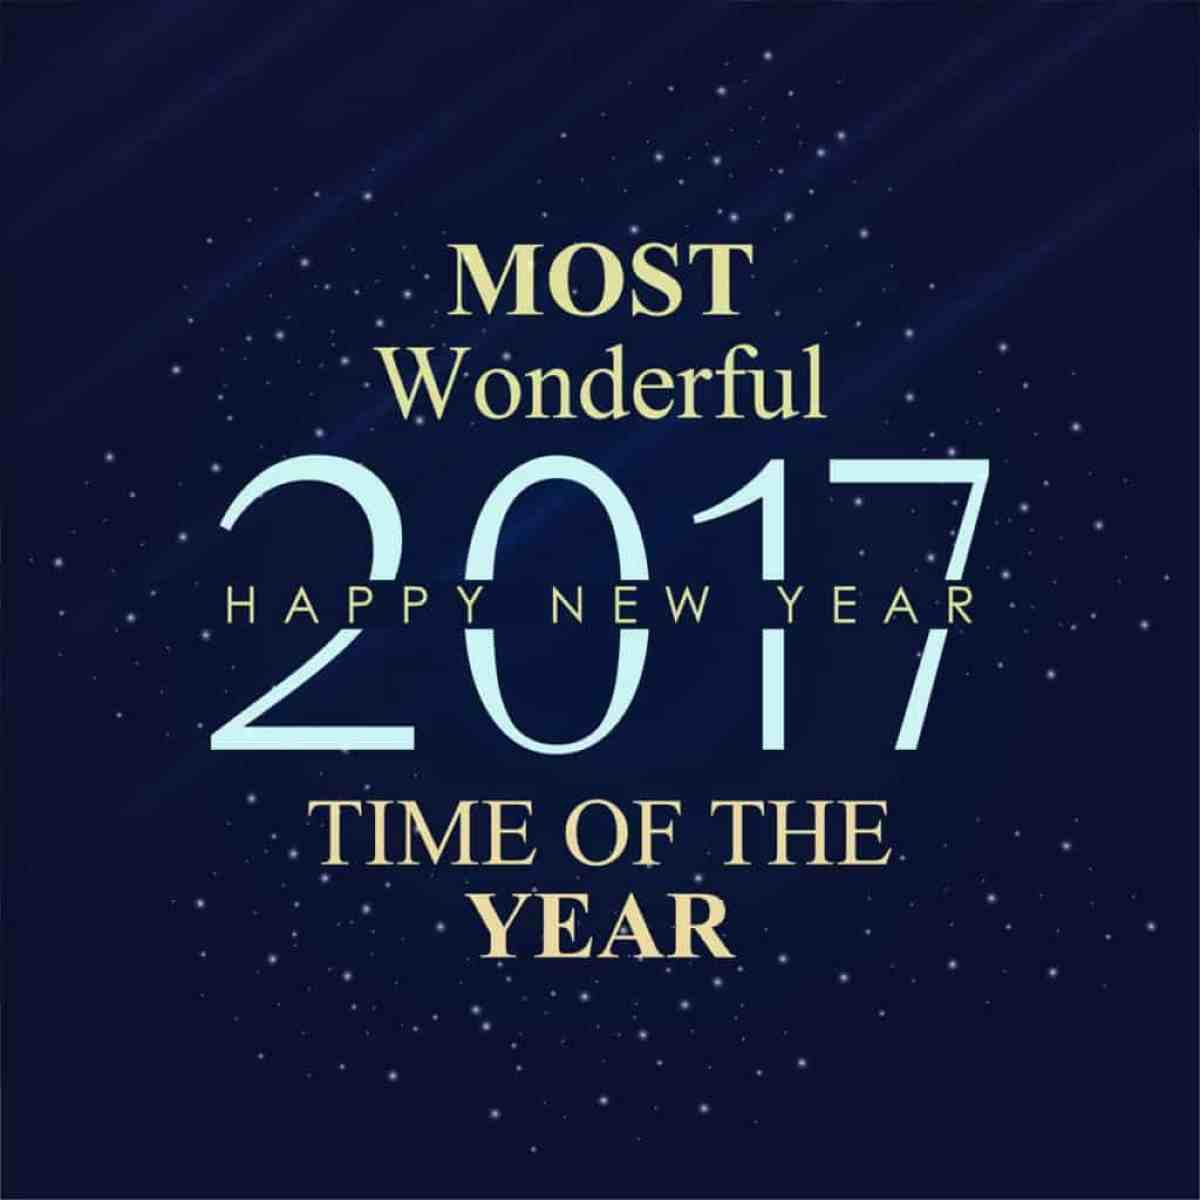 Happy New Year 2017 most wonderful time of the year